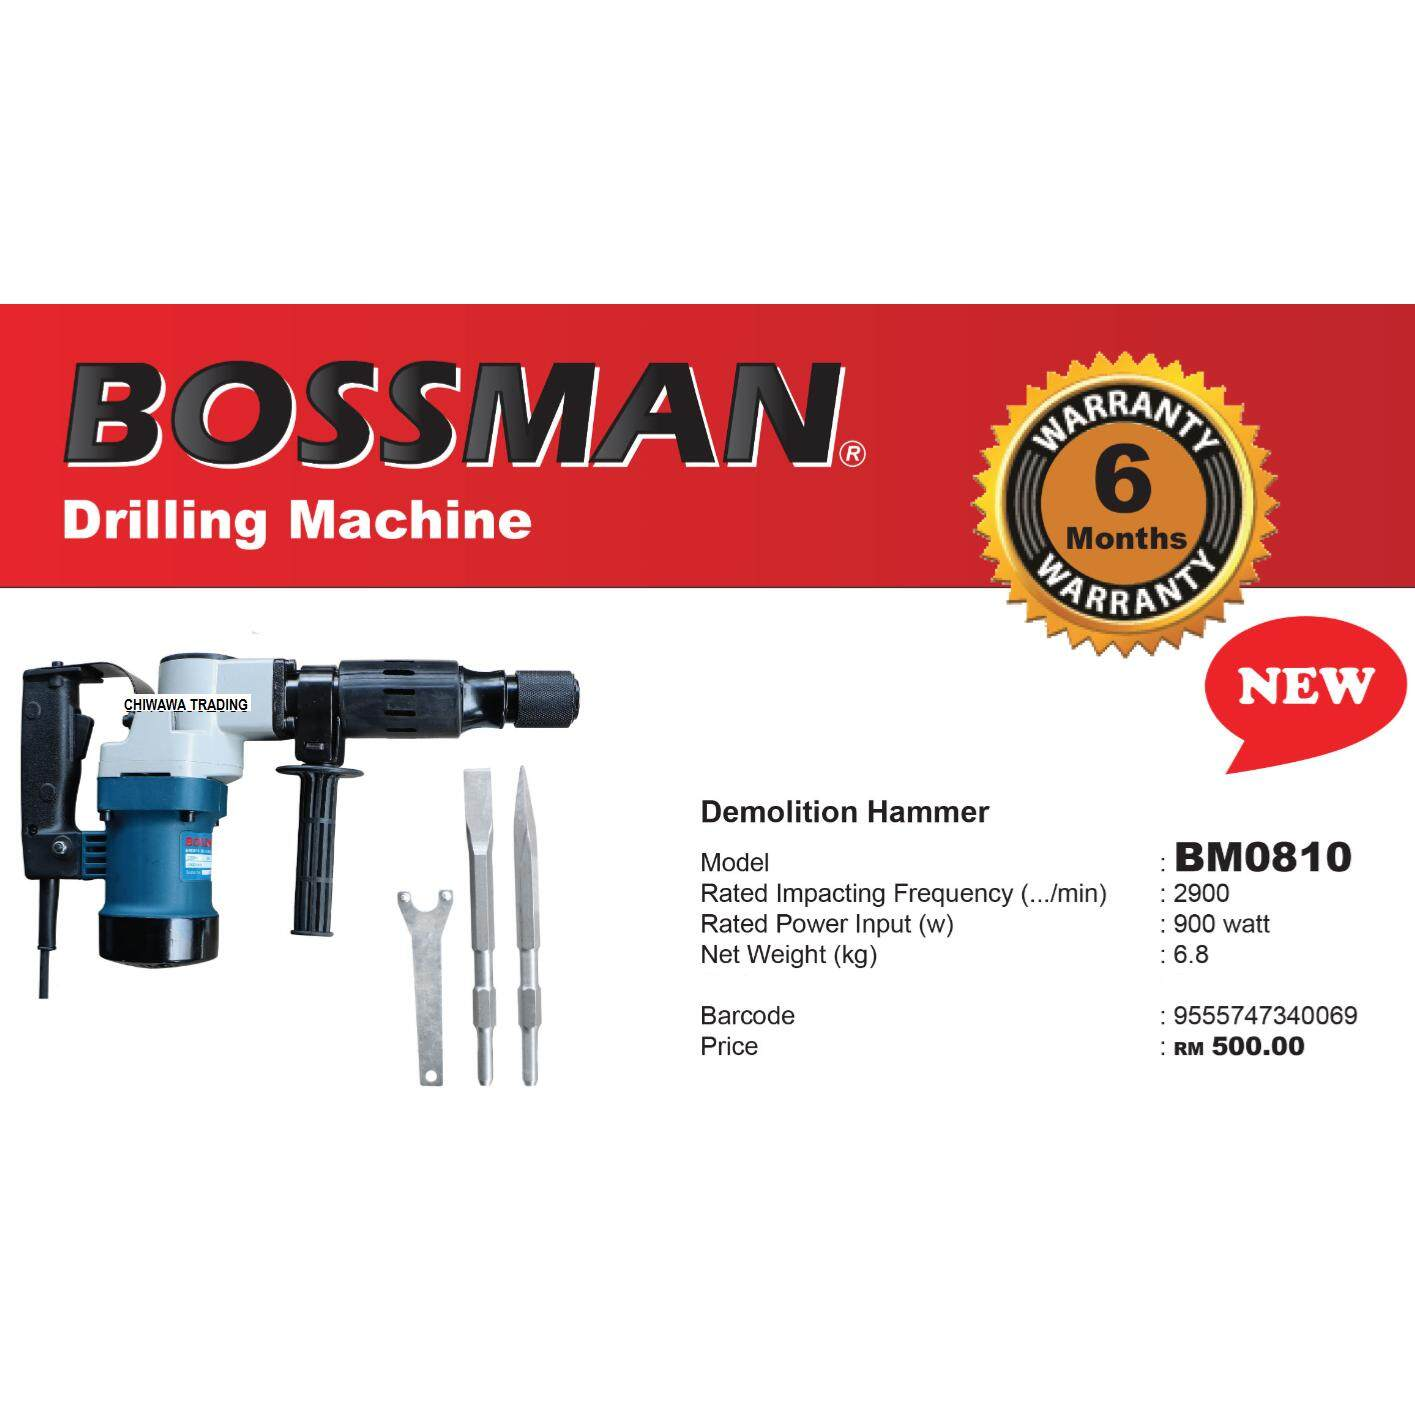 Bossman Demolition Hammer 900w Bm0810 High Quality Power Drilling Machine By Chiwawa Trading.